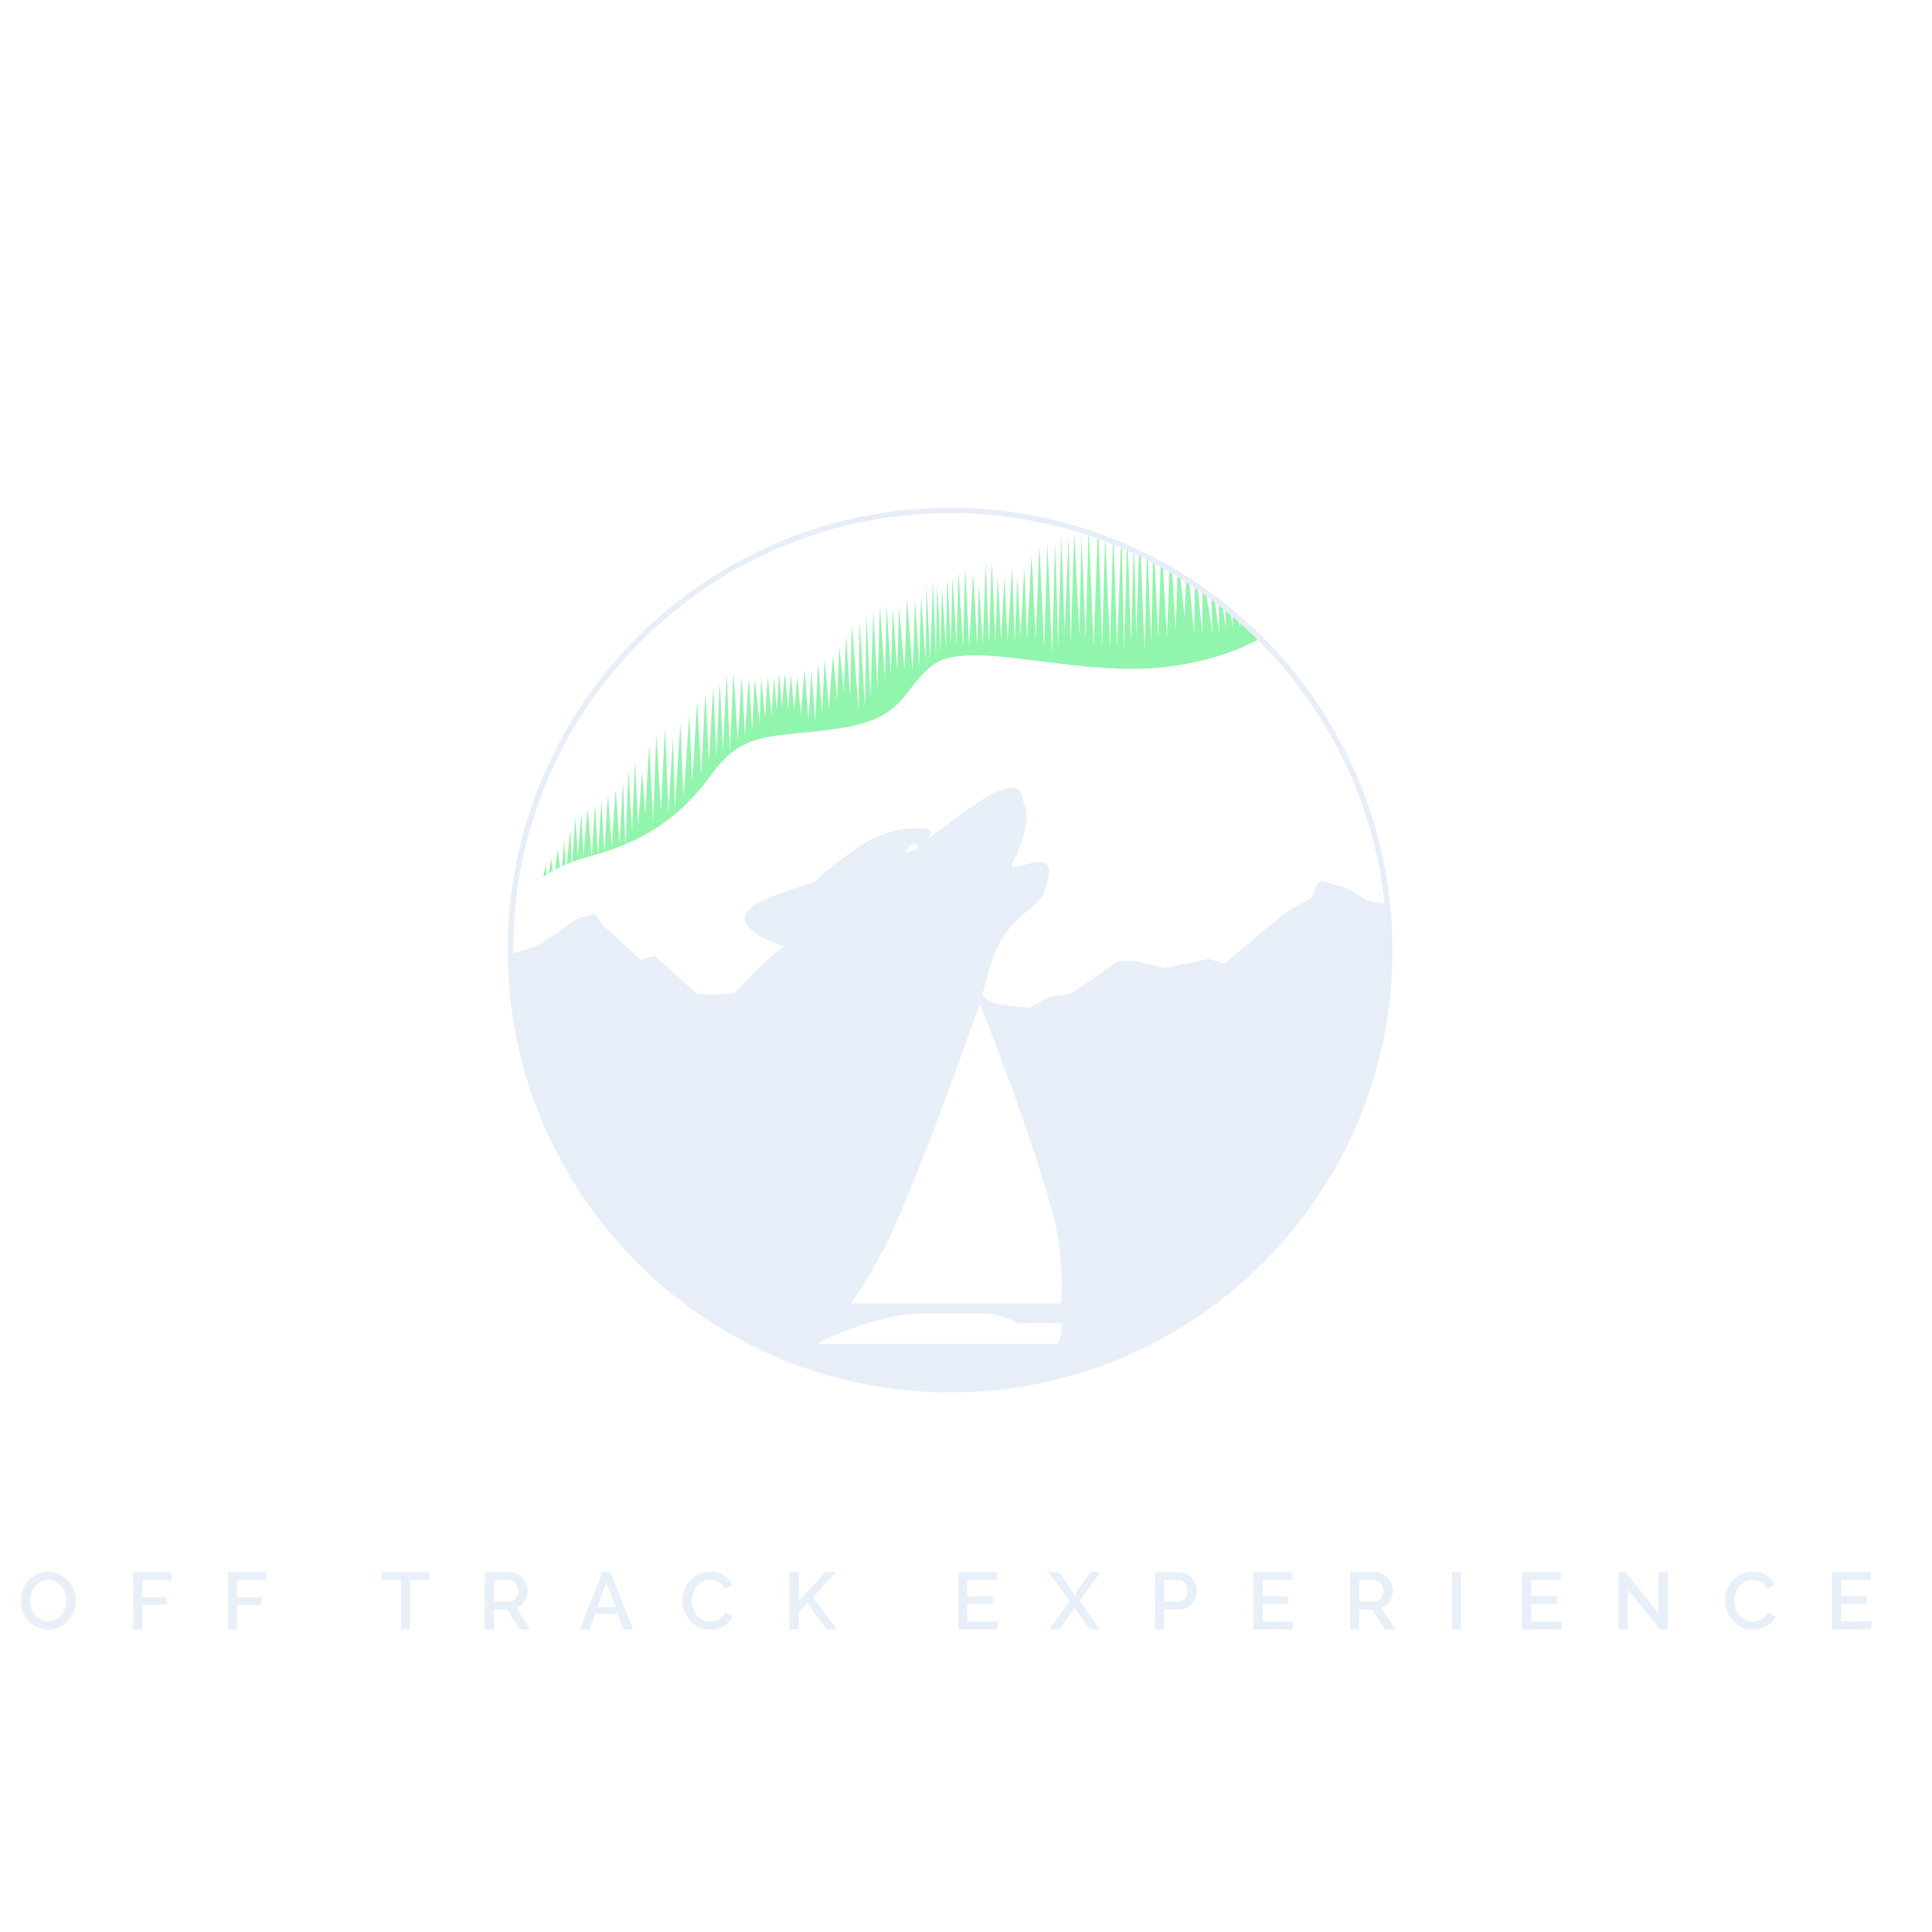 Off Track Experience